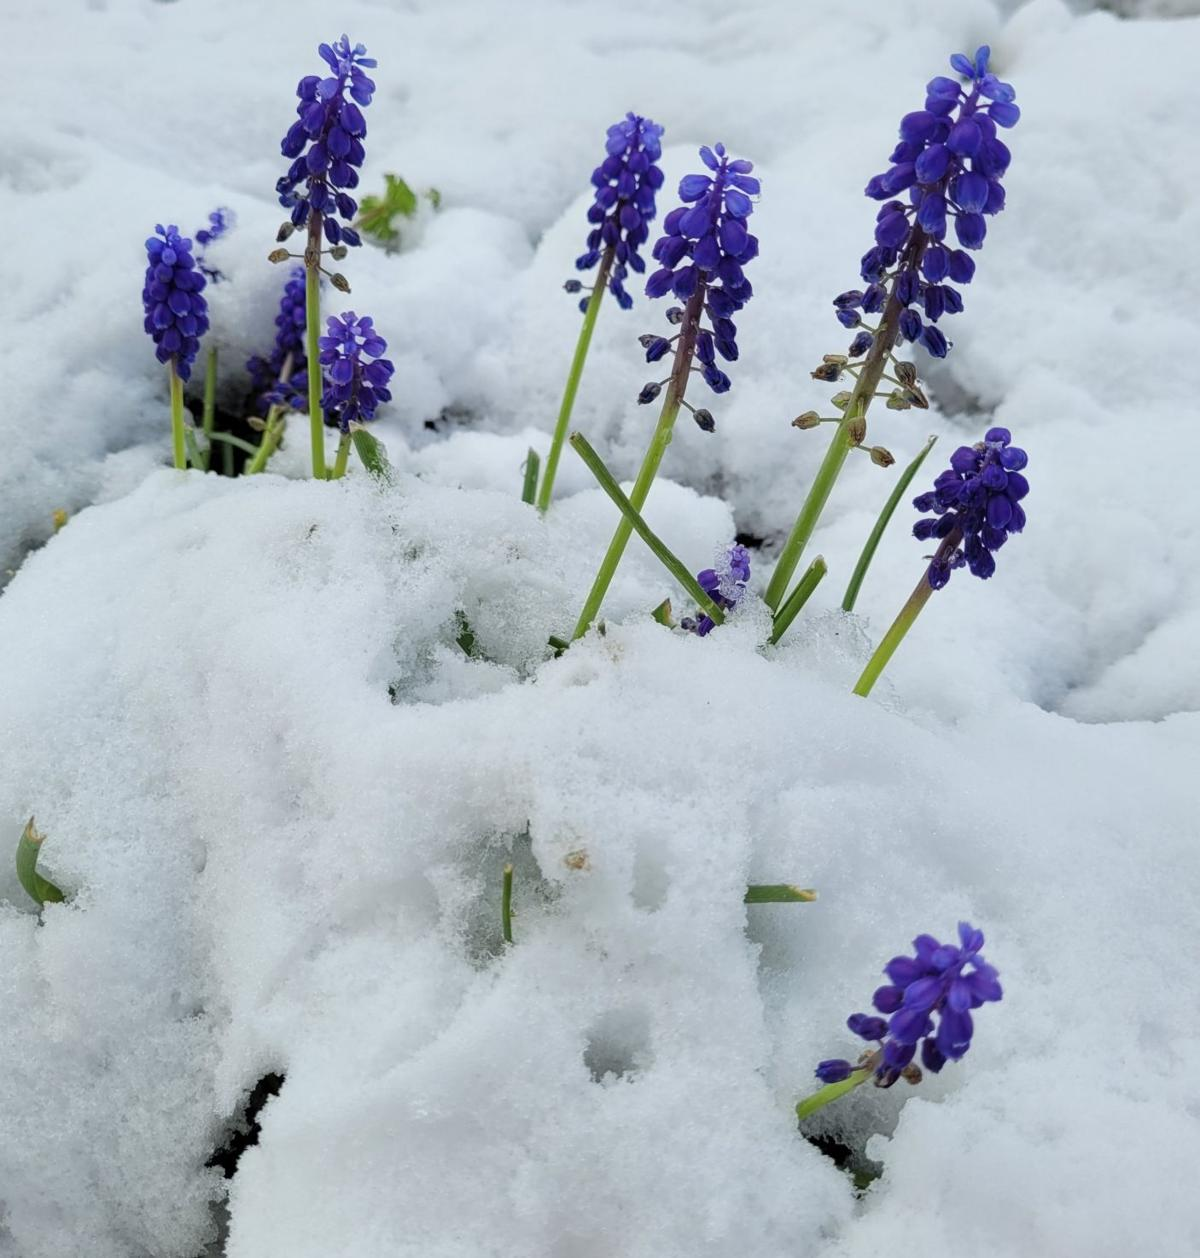 Bluebells poke their way out of snow